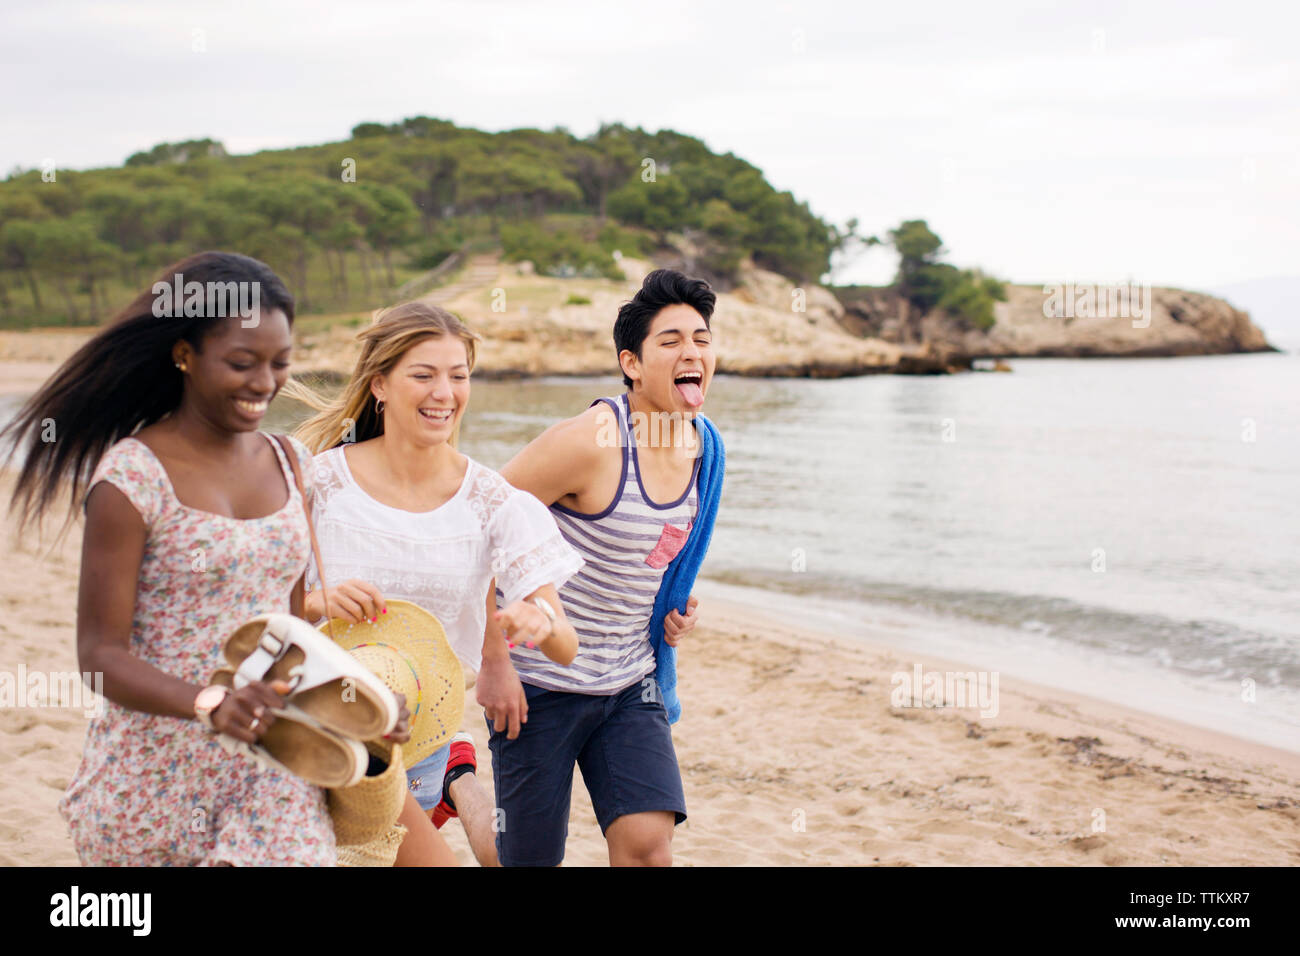 Cheerful friends running on beach during vacation - Stock Image